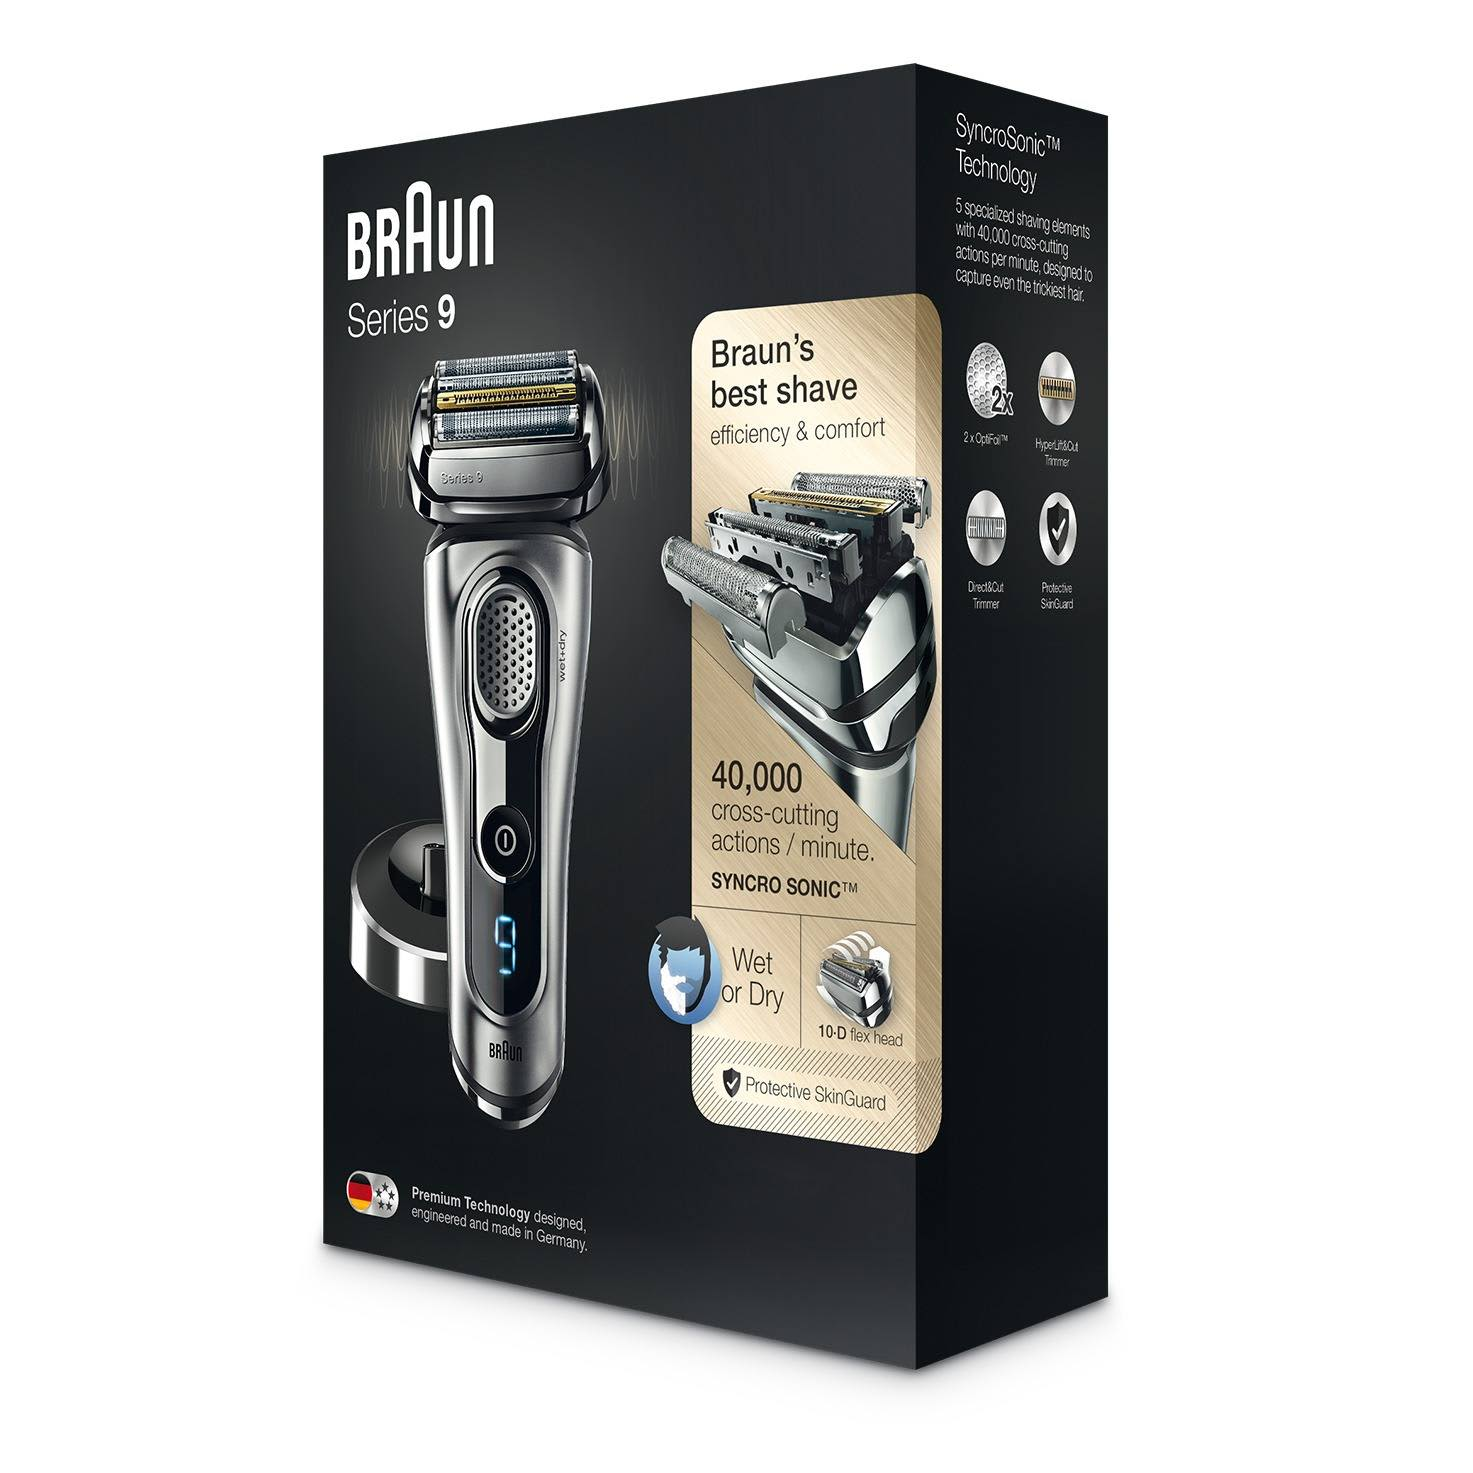 Braun Series 9 silver electric shaver packaging